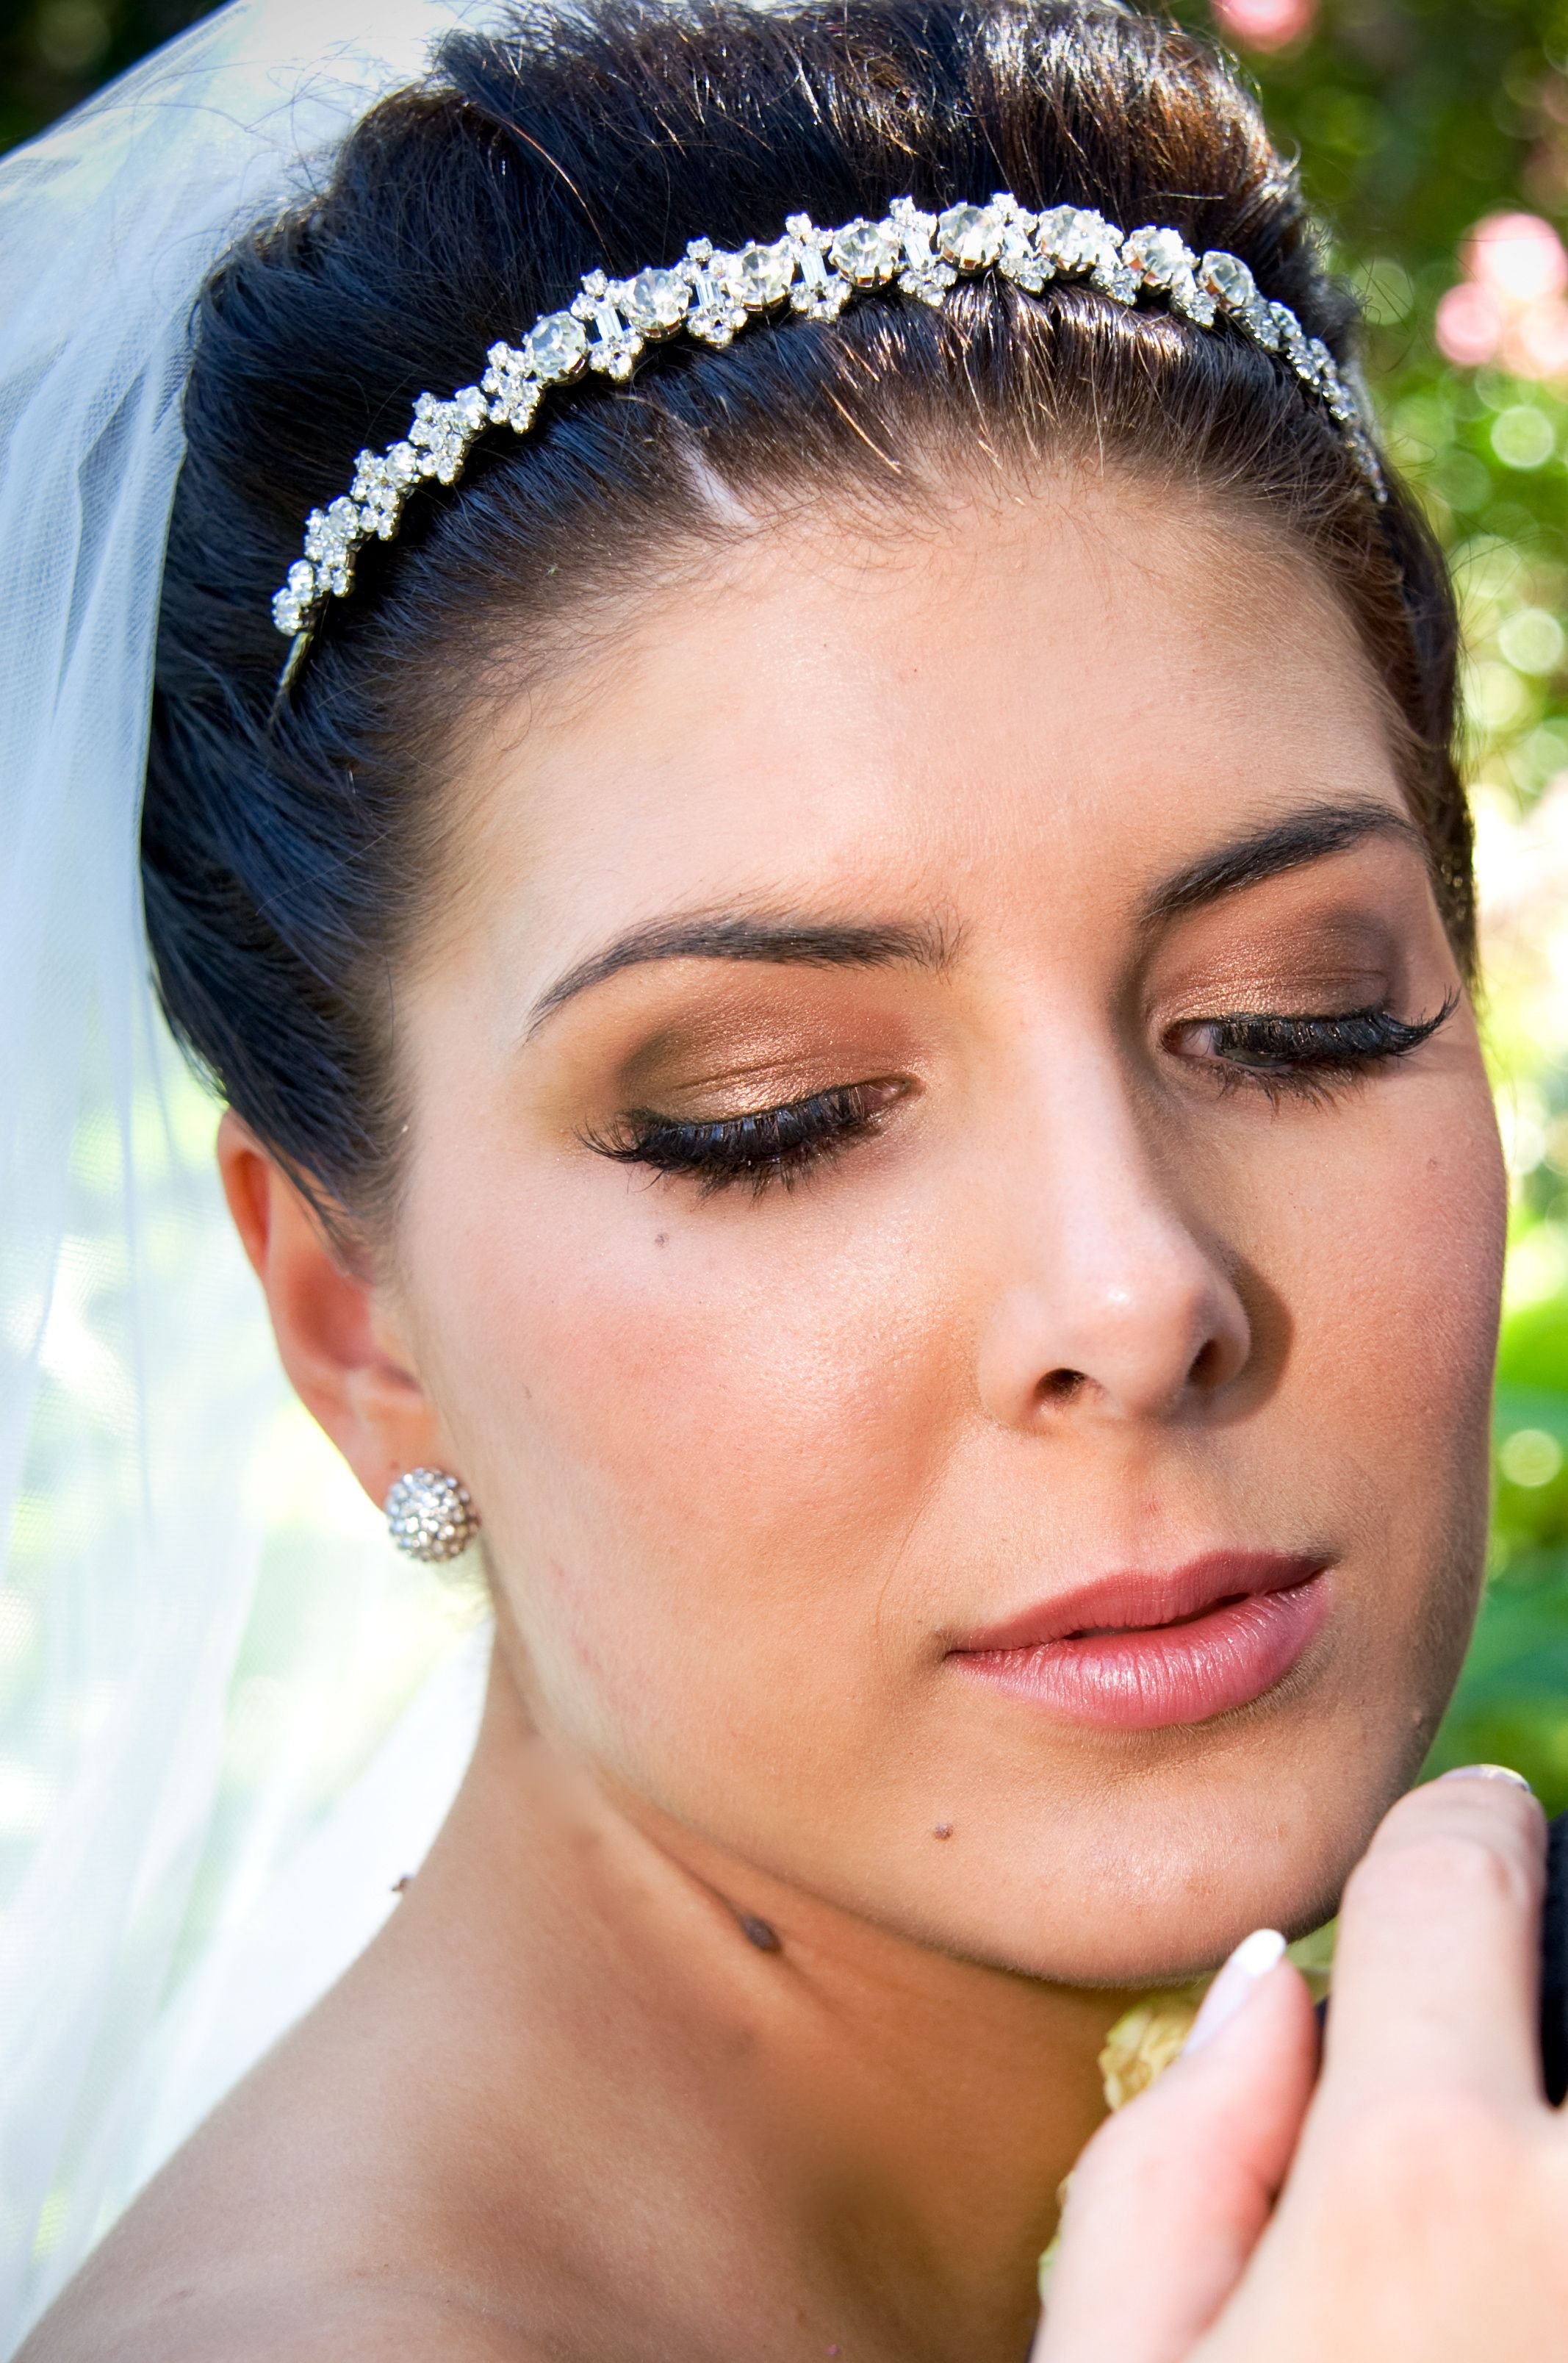 Natural Bridal Makeup in Shades of Brown & Golds with Soft